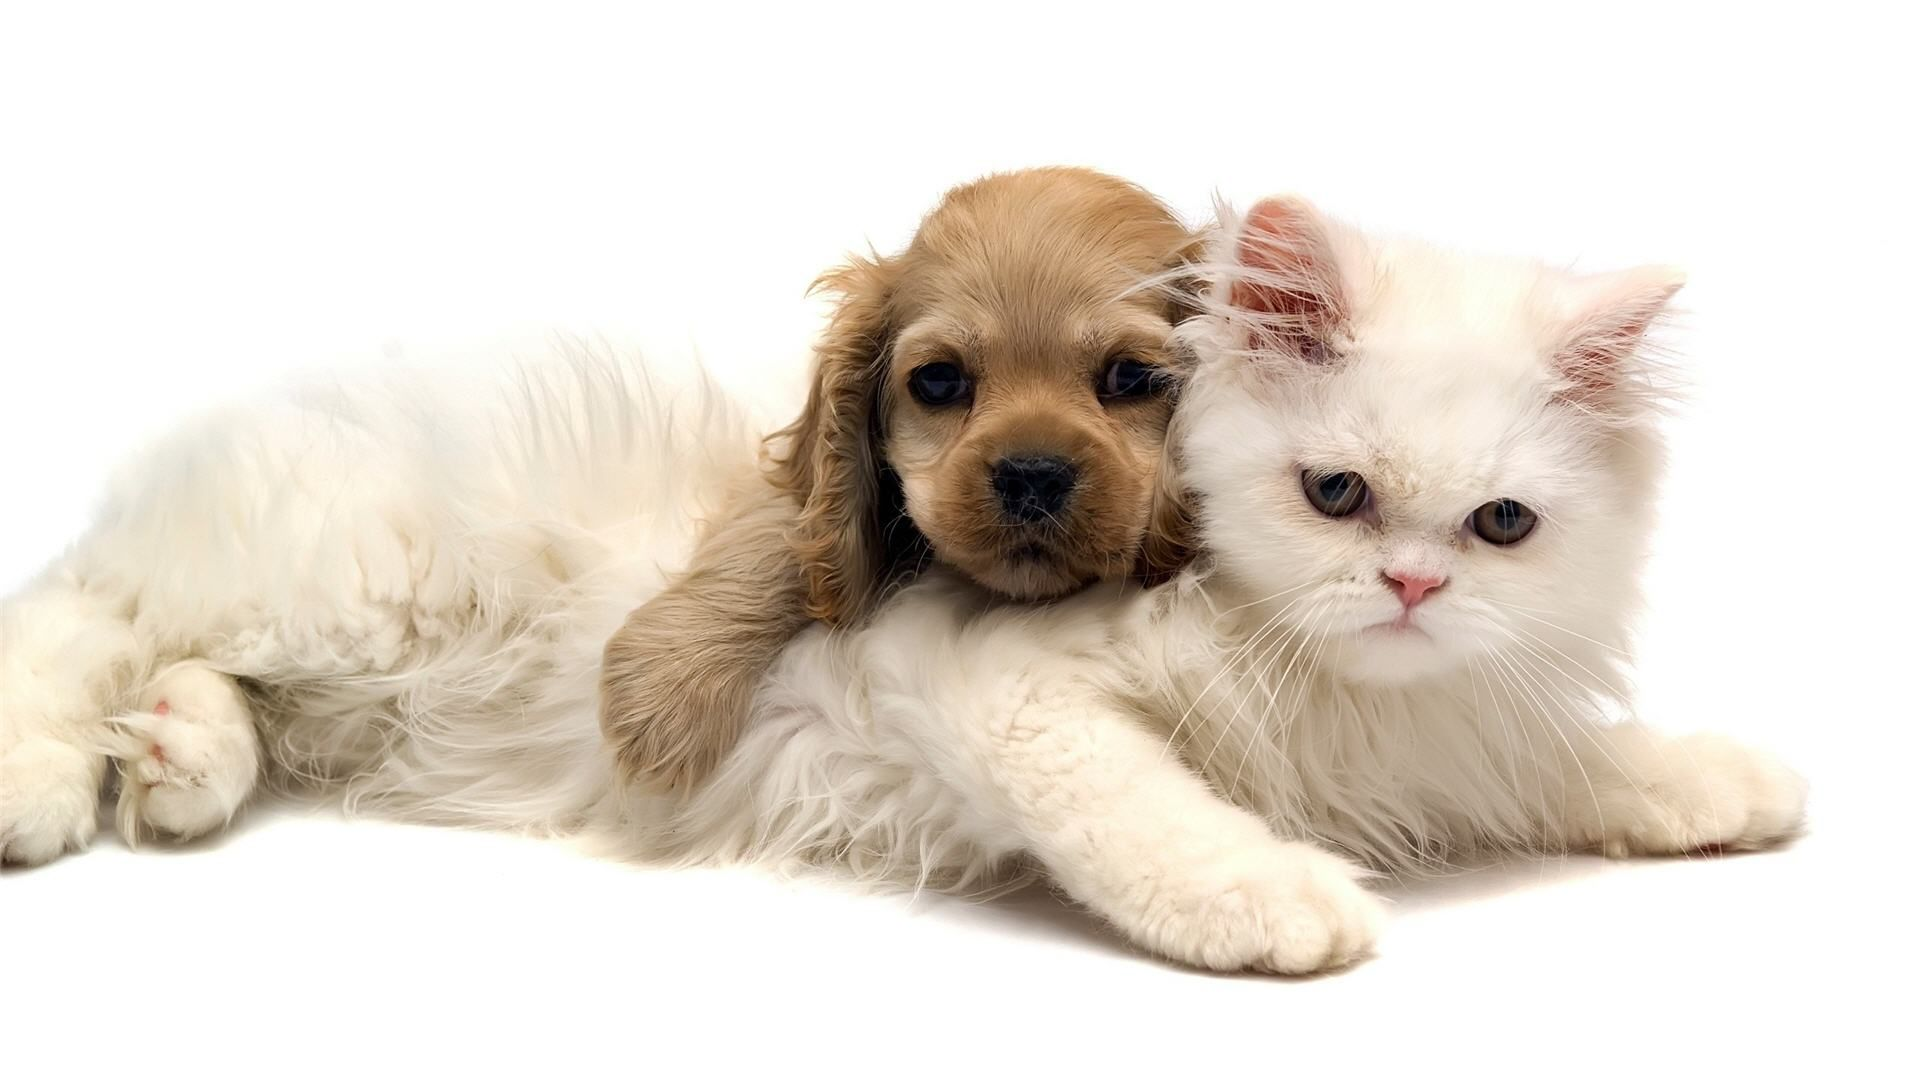 Adorable Cat and Dog Wallpaper Wallpapers Green Cat Cute